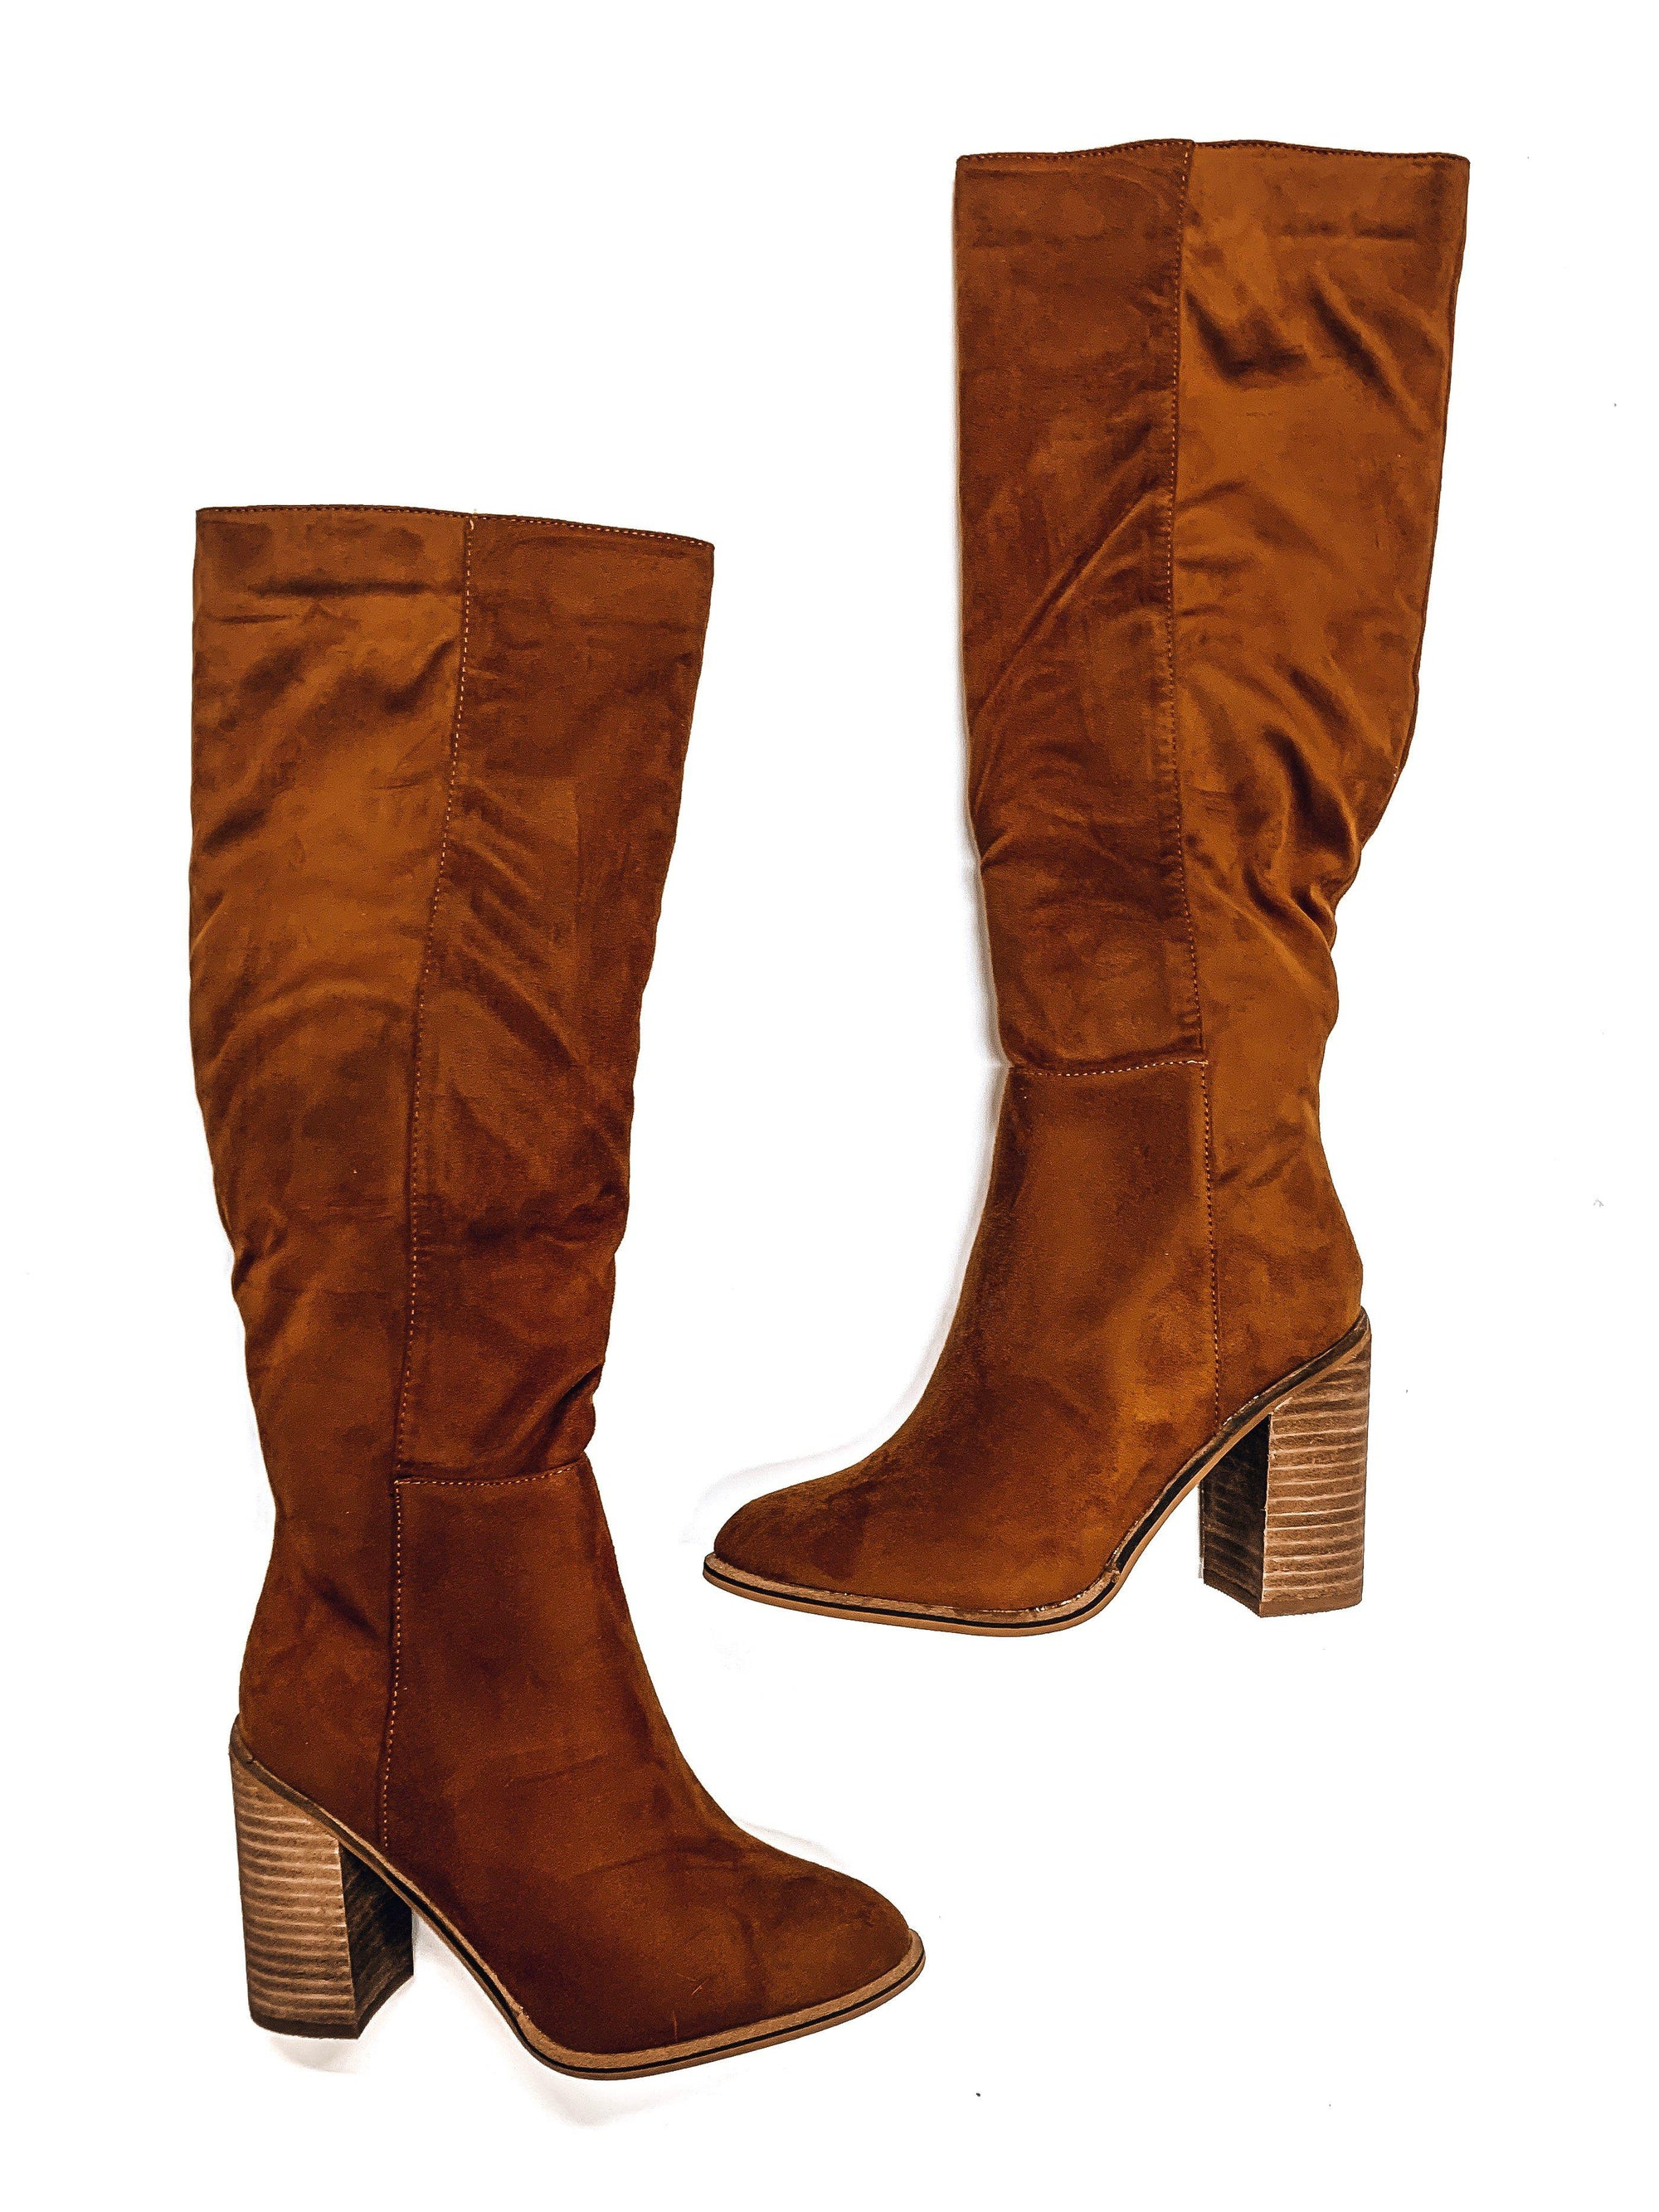 The Reese-Women's SHOES-New Arrivals-Runway Seven